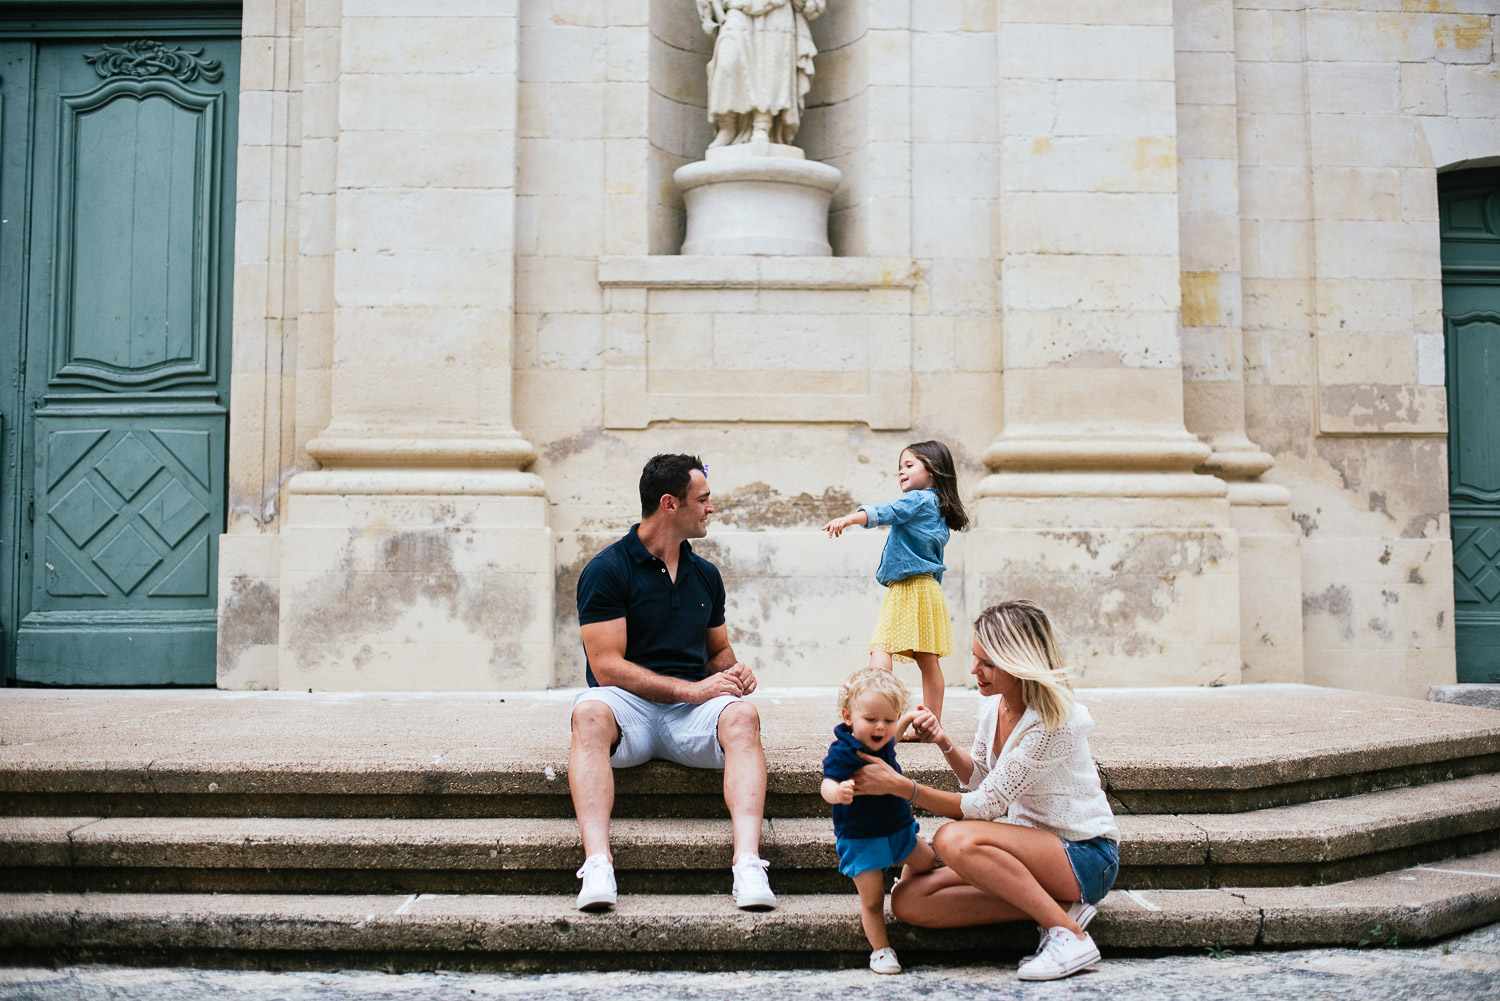 castres_family__france_katy_webb_photography_toulouse_24